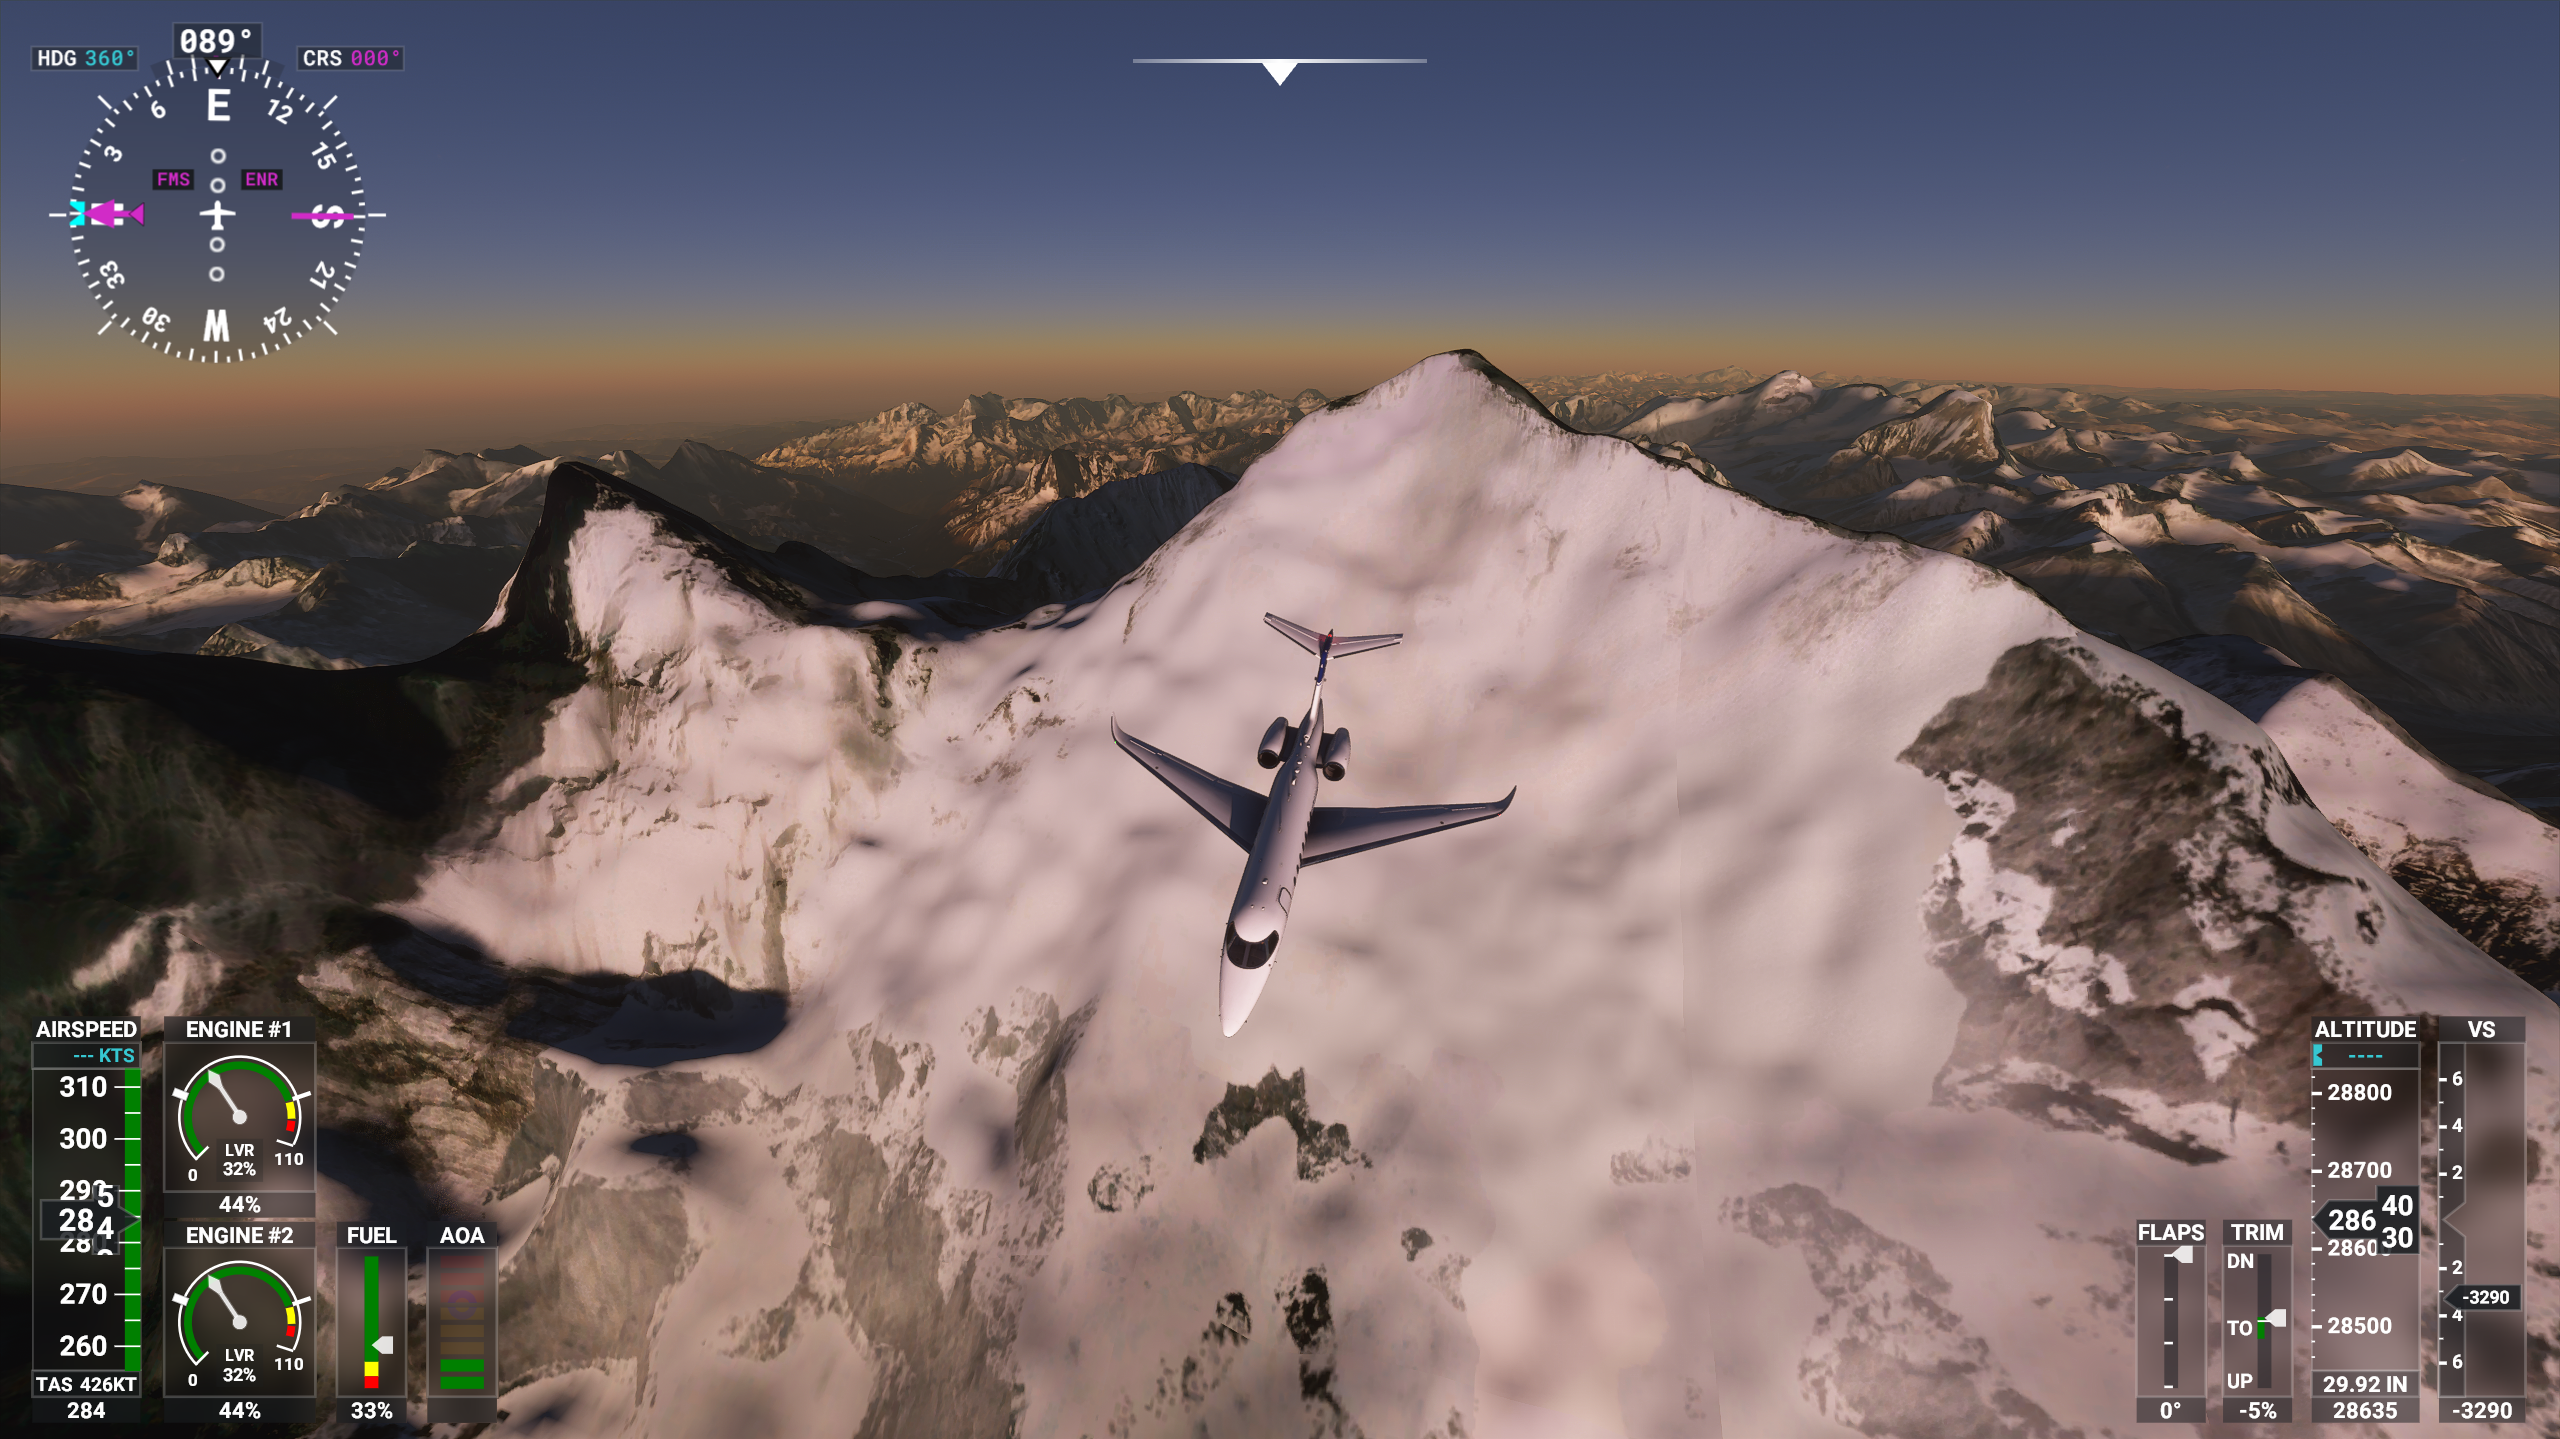 2020-08-19 22_17_59-Microsoft Flight Simulator - 1.7.12.0.png